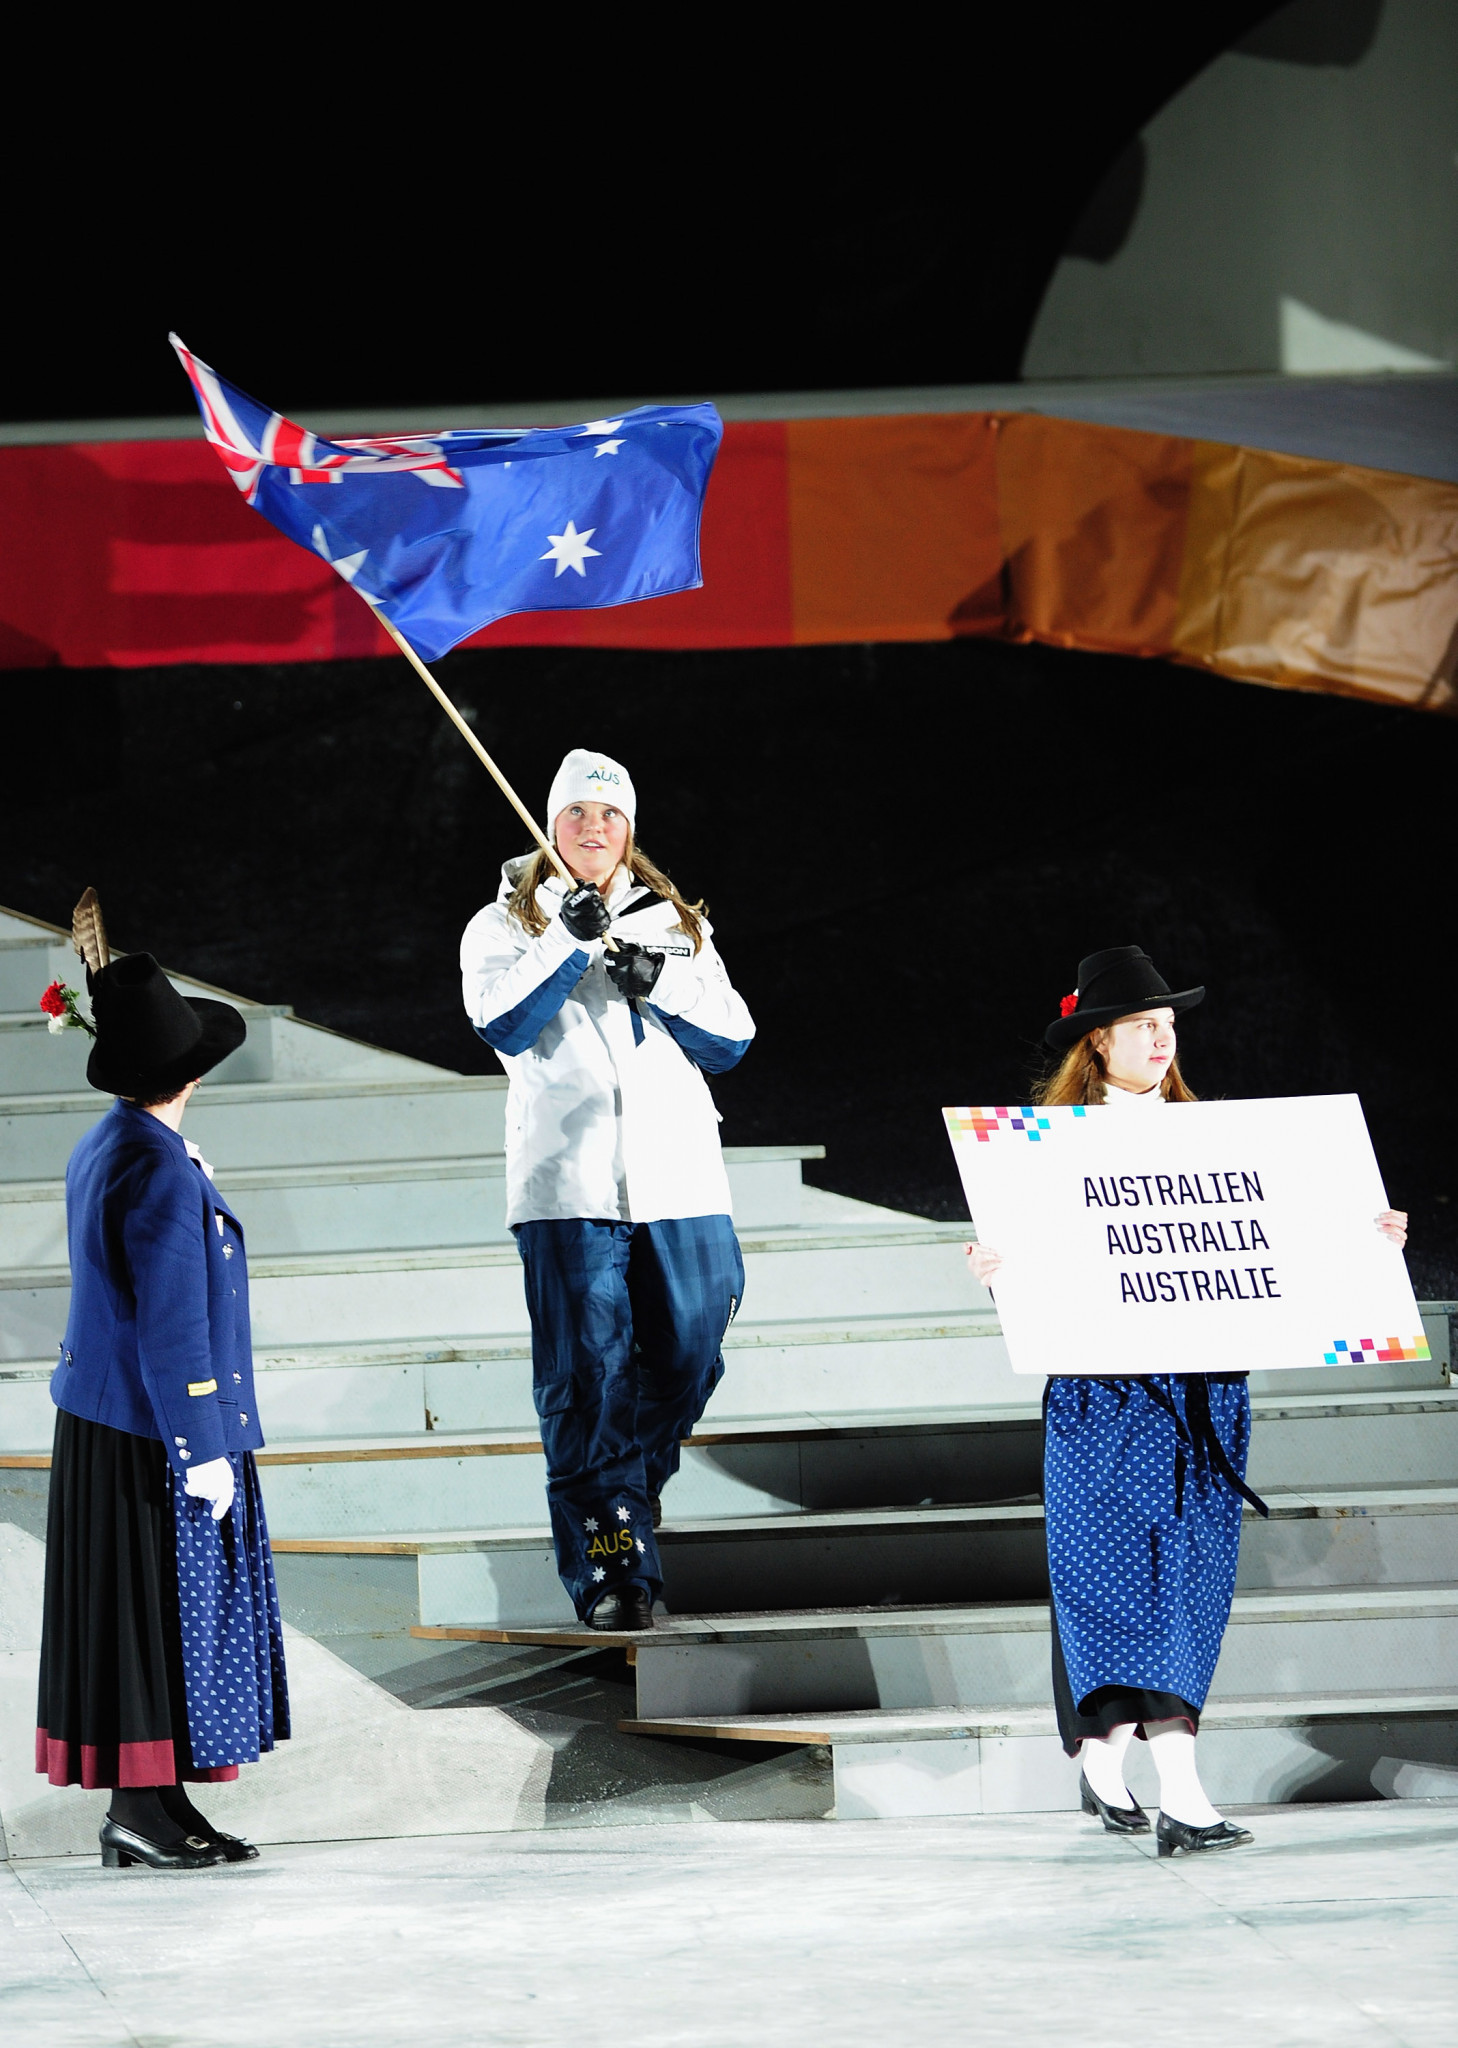 Keely Small's cousin, Alpine skier Greta Small, carried Australia's flag during the Opening Ceremony of the Winter Youth Olympic Games in Innsbruck in 2012 ©Getty Images